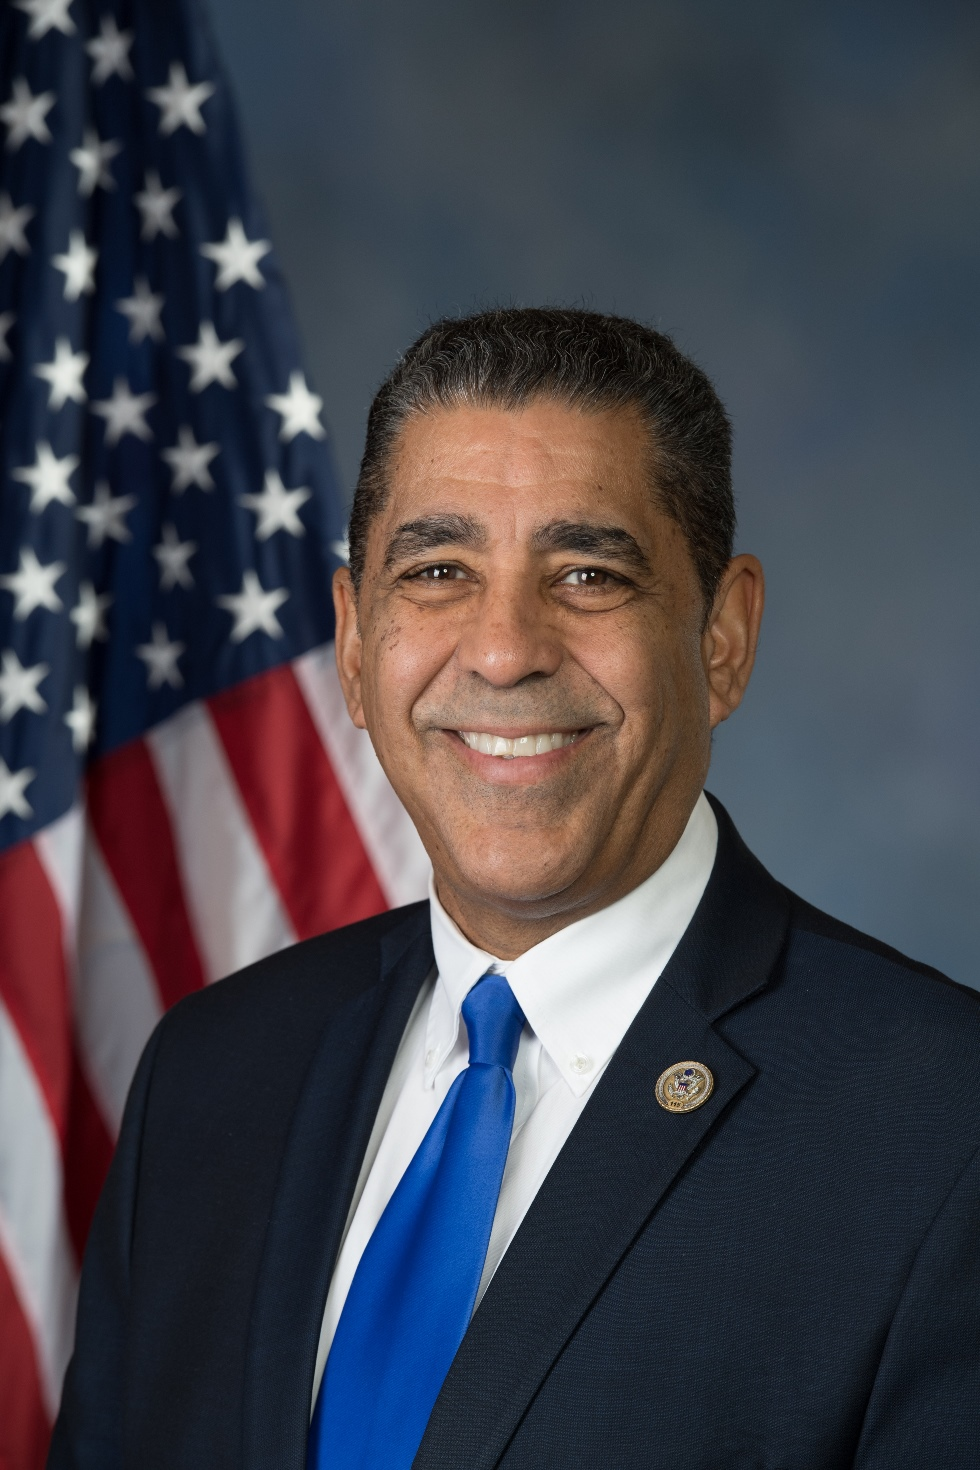 1a Rep. Adriano Espaillat NY13 official